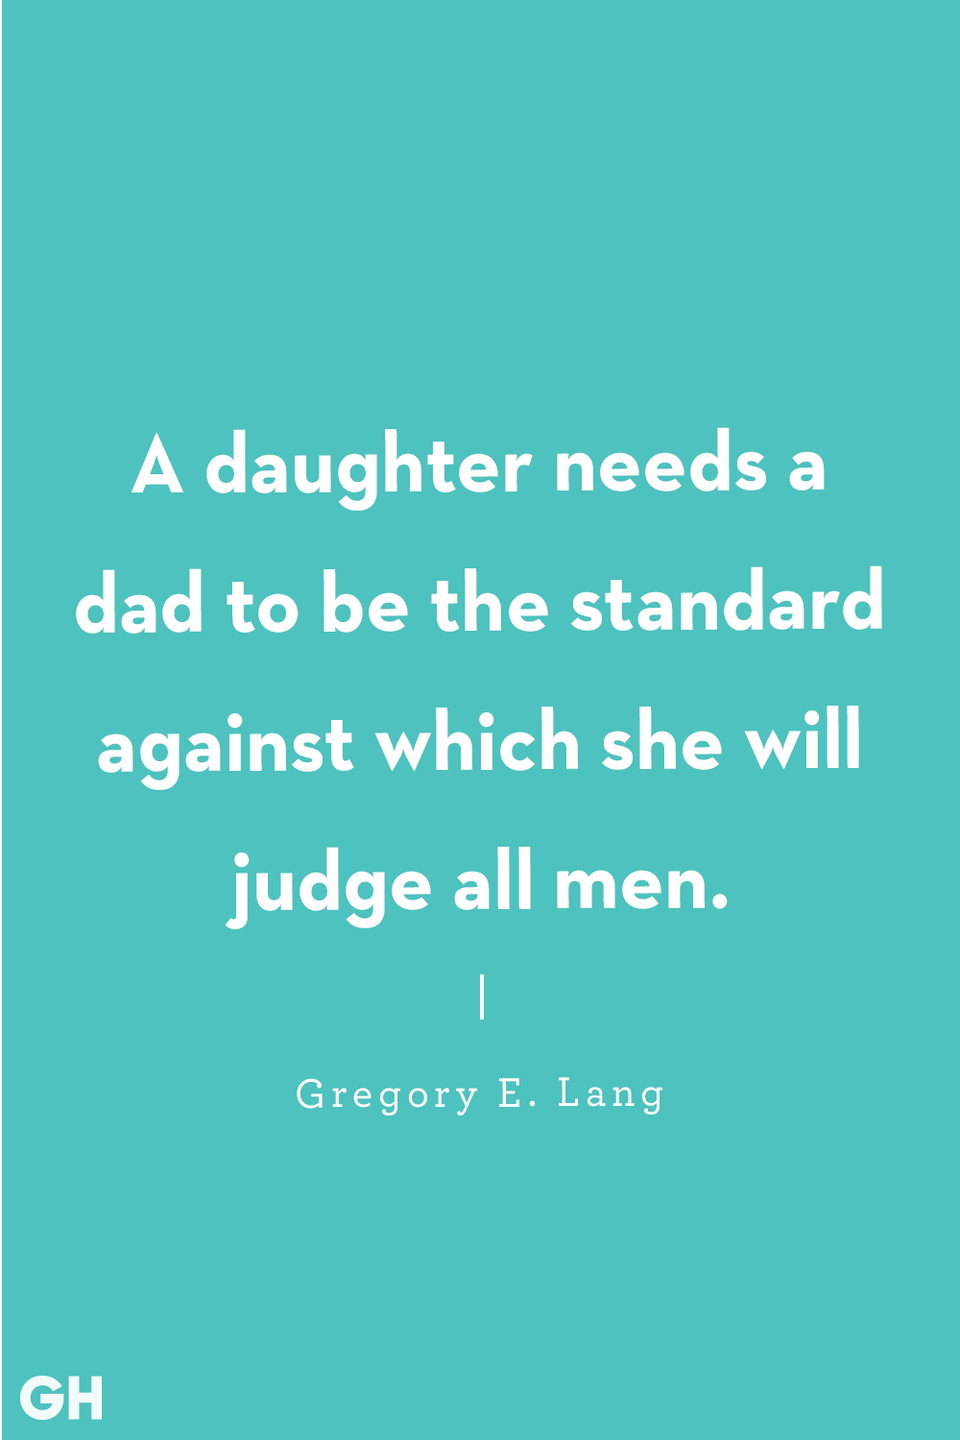 <p>A daughter needs a dad to be the standard against which she will judge all men.</p>